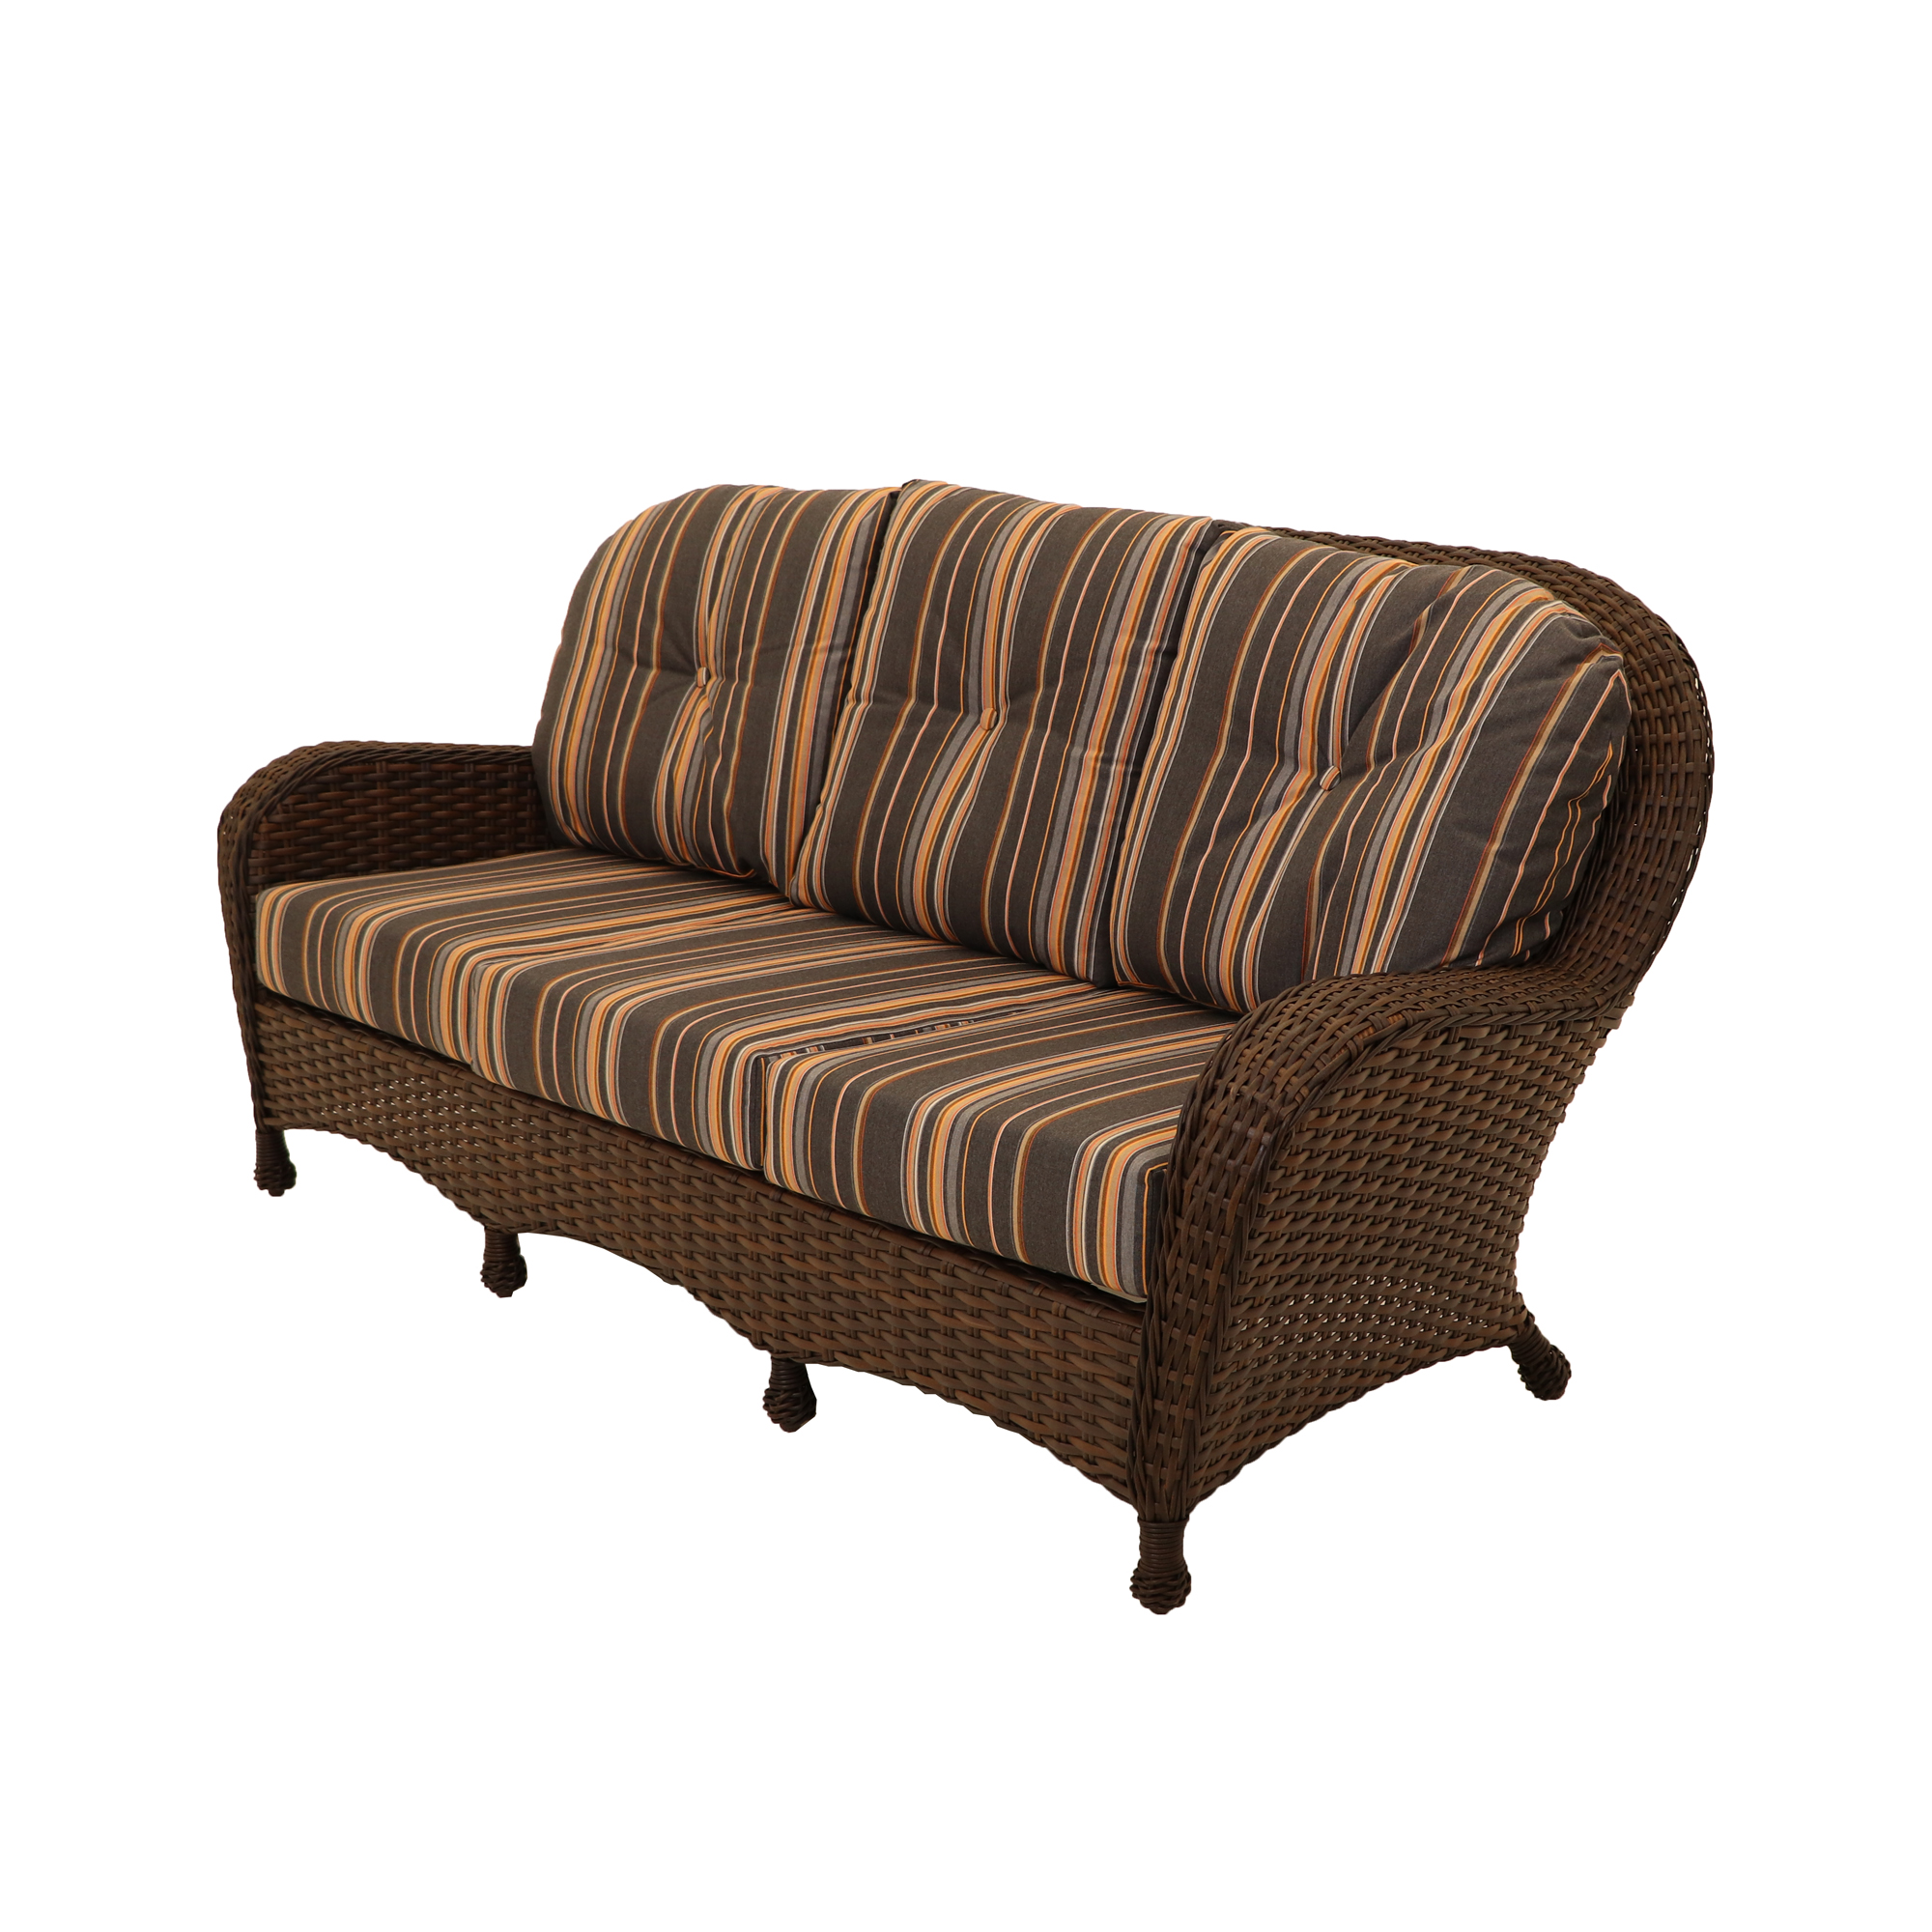 Big Sofa Hawana Havana Wicker Sofa Patio Furniture At Sun Country